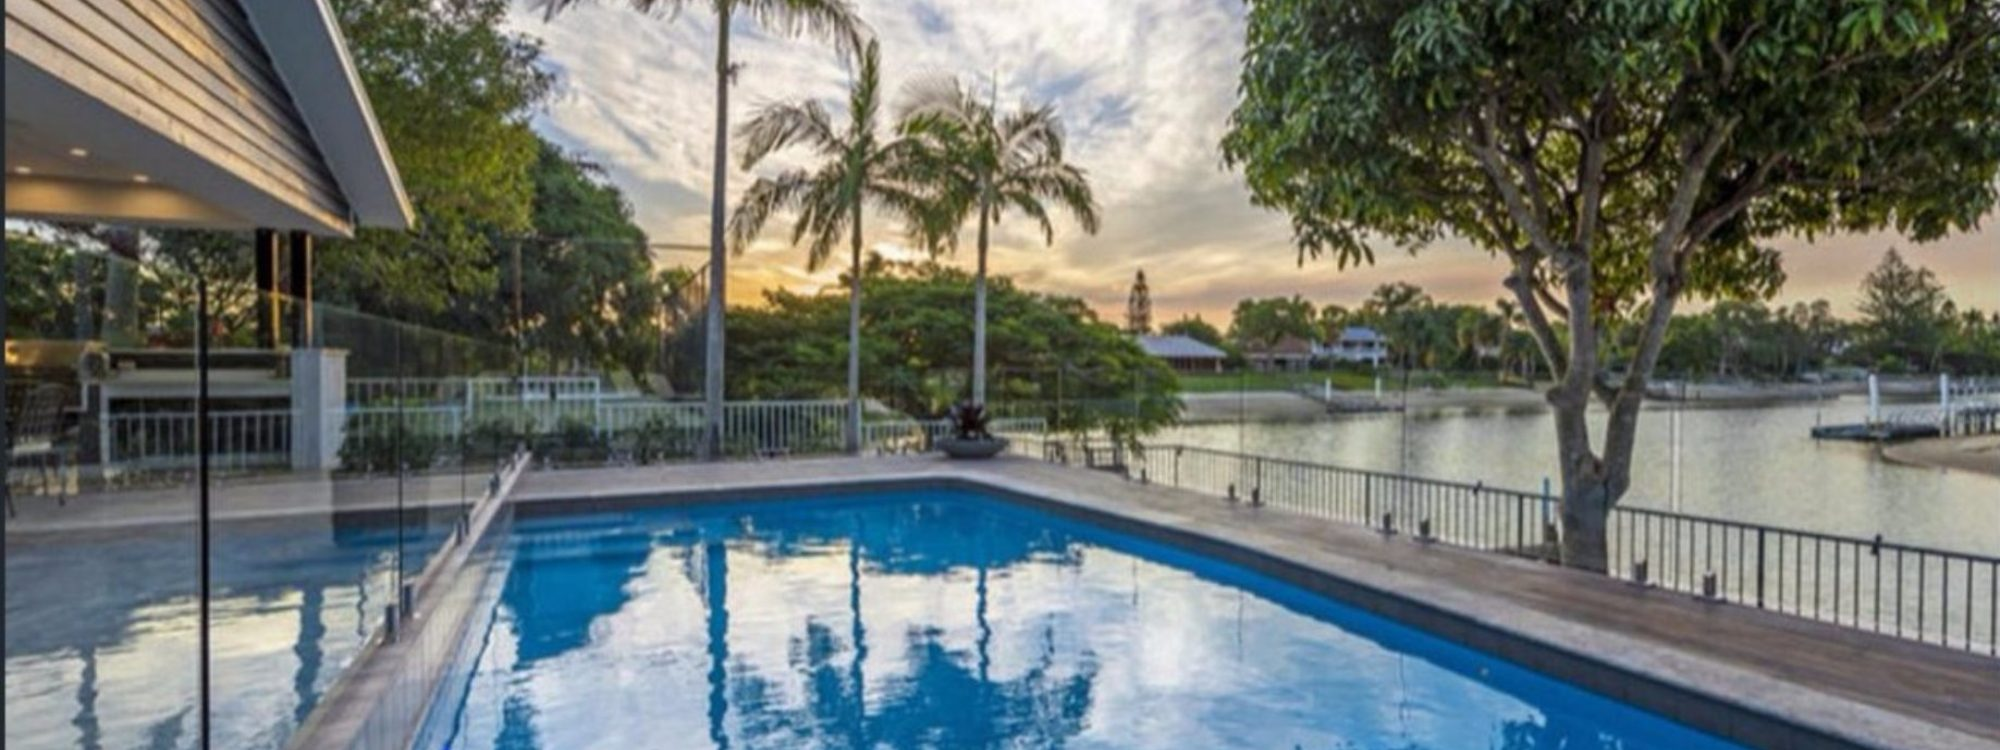 Casa Royale - Broadbeach Waters - Pool and canal view